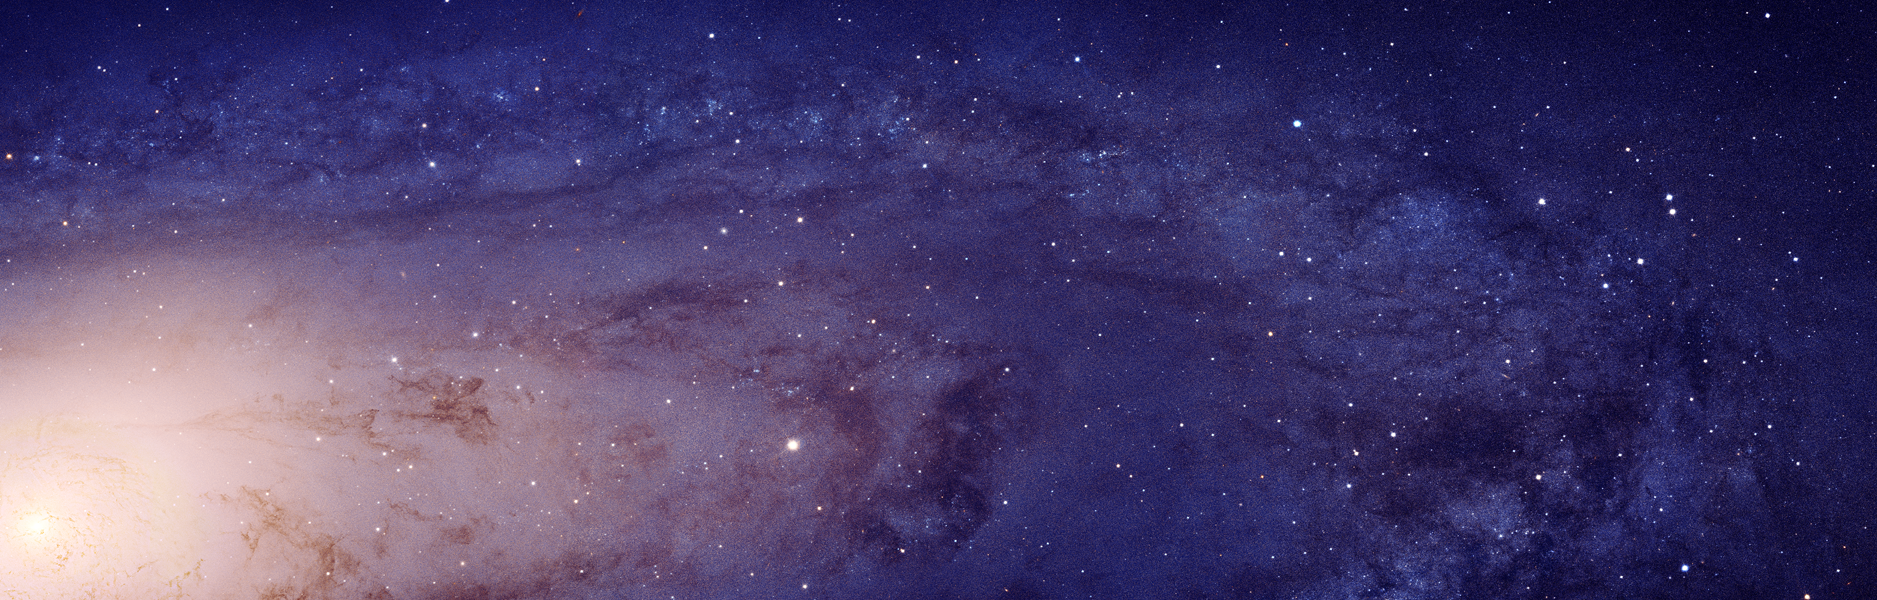 Andromeda Galaxy Hd Panoramic Hubbleart Comhubbleart Com